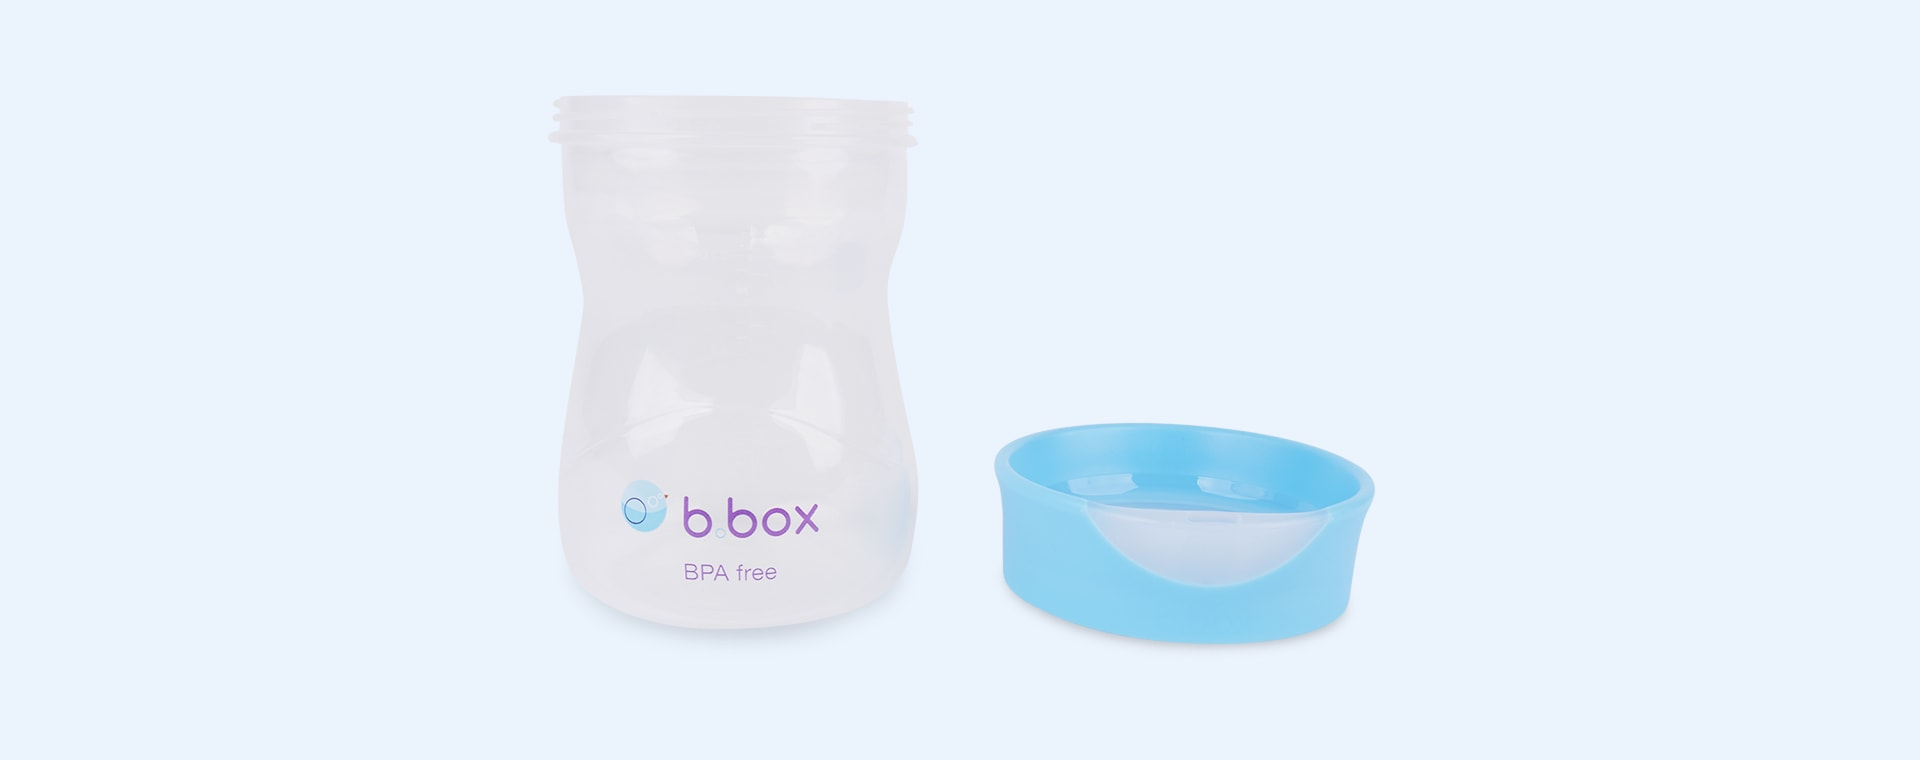 Blueberry b.box Training Rim Cup